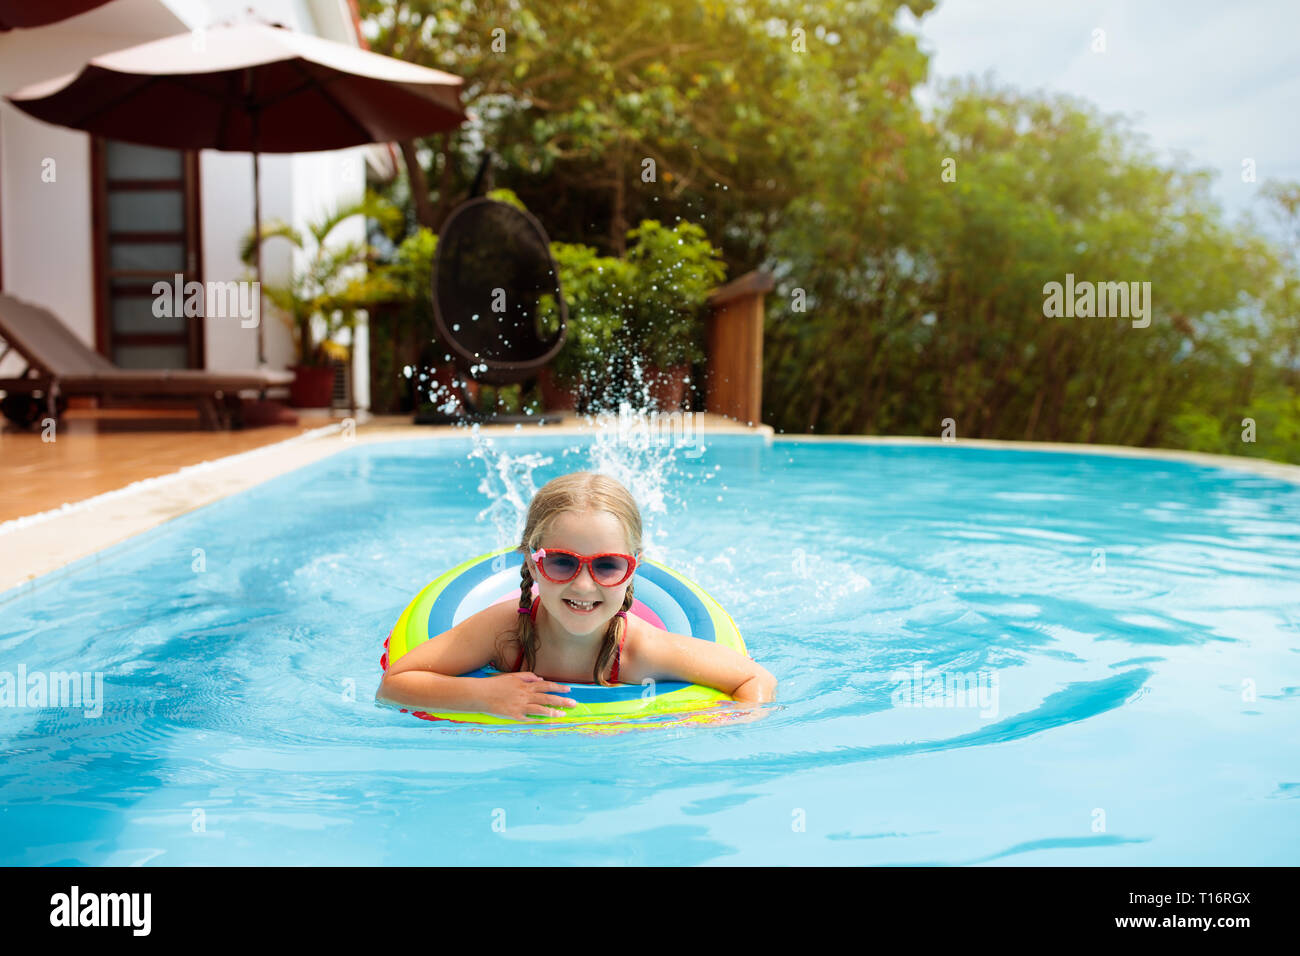 180d22d81d Child with goggles in swimming pool. Little girl learning to swim and dive  in outdoor pool of tropical resort. Swimming with kids. Healthy sport activ